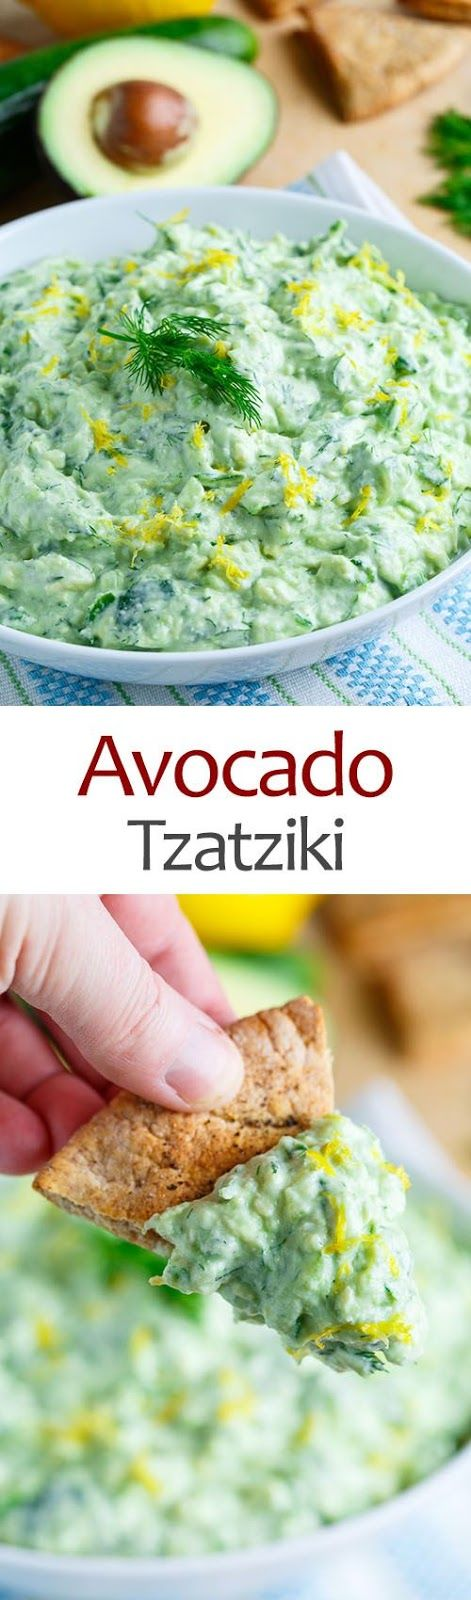 Ingredients   1 large ripe avocado, mashed   1/2 cup plain Greek yogurt   1/2 cup cucumber, peeled, seeded, grated, and squeezed to dra...